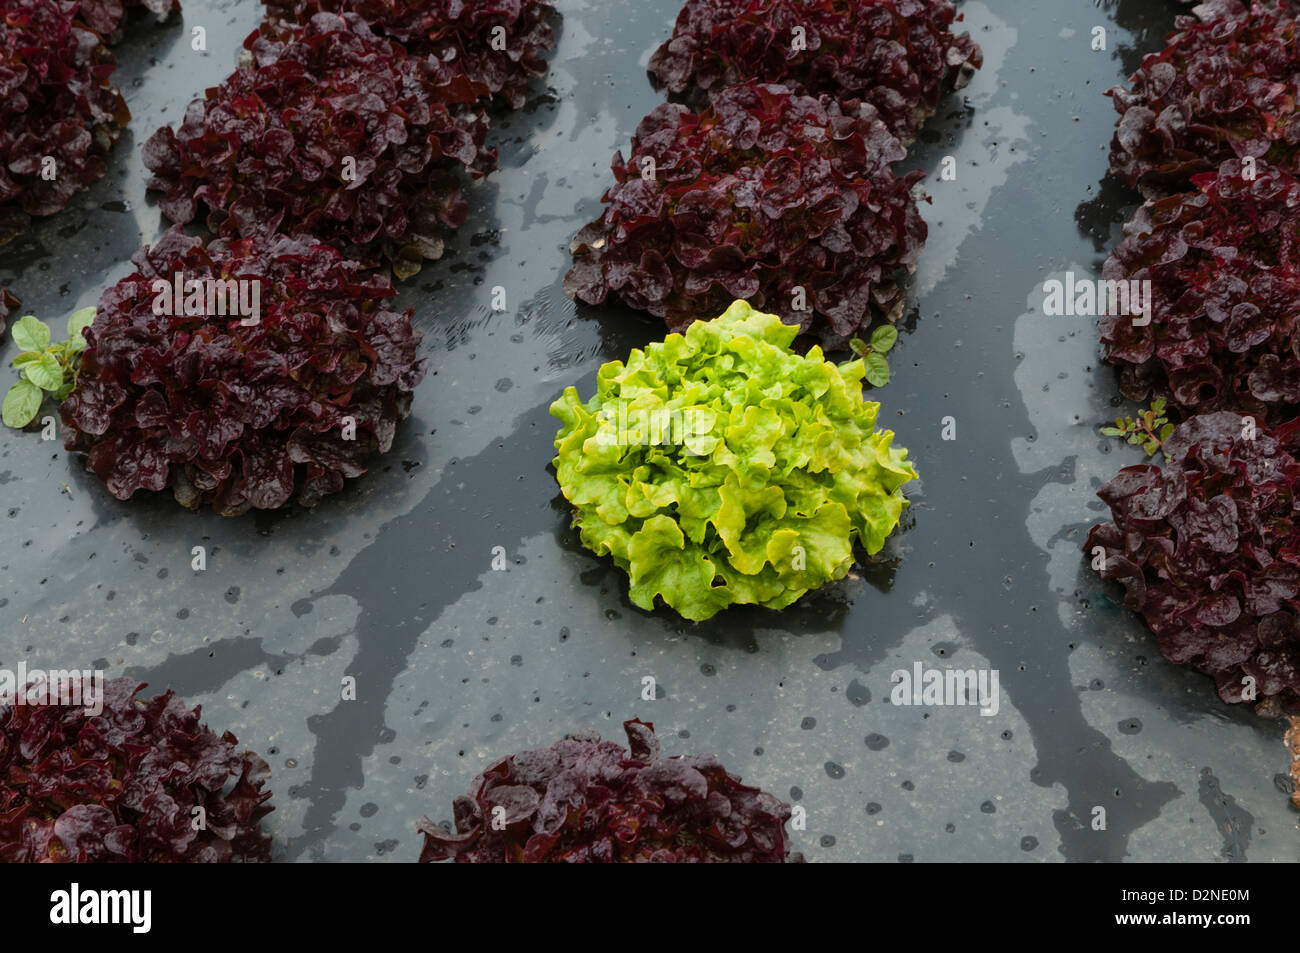 Agricultural Field Cropping Different Types Of Lettuces Spain